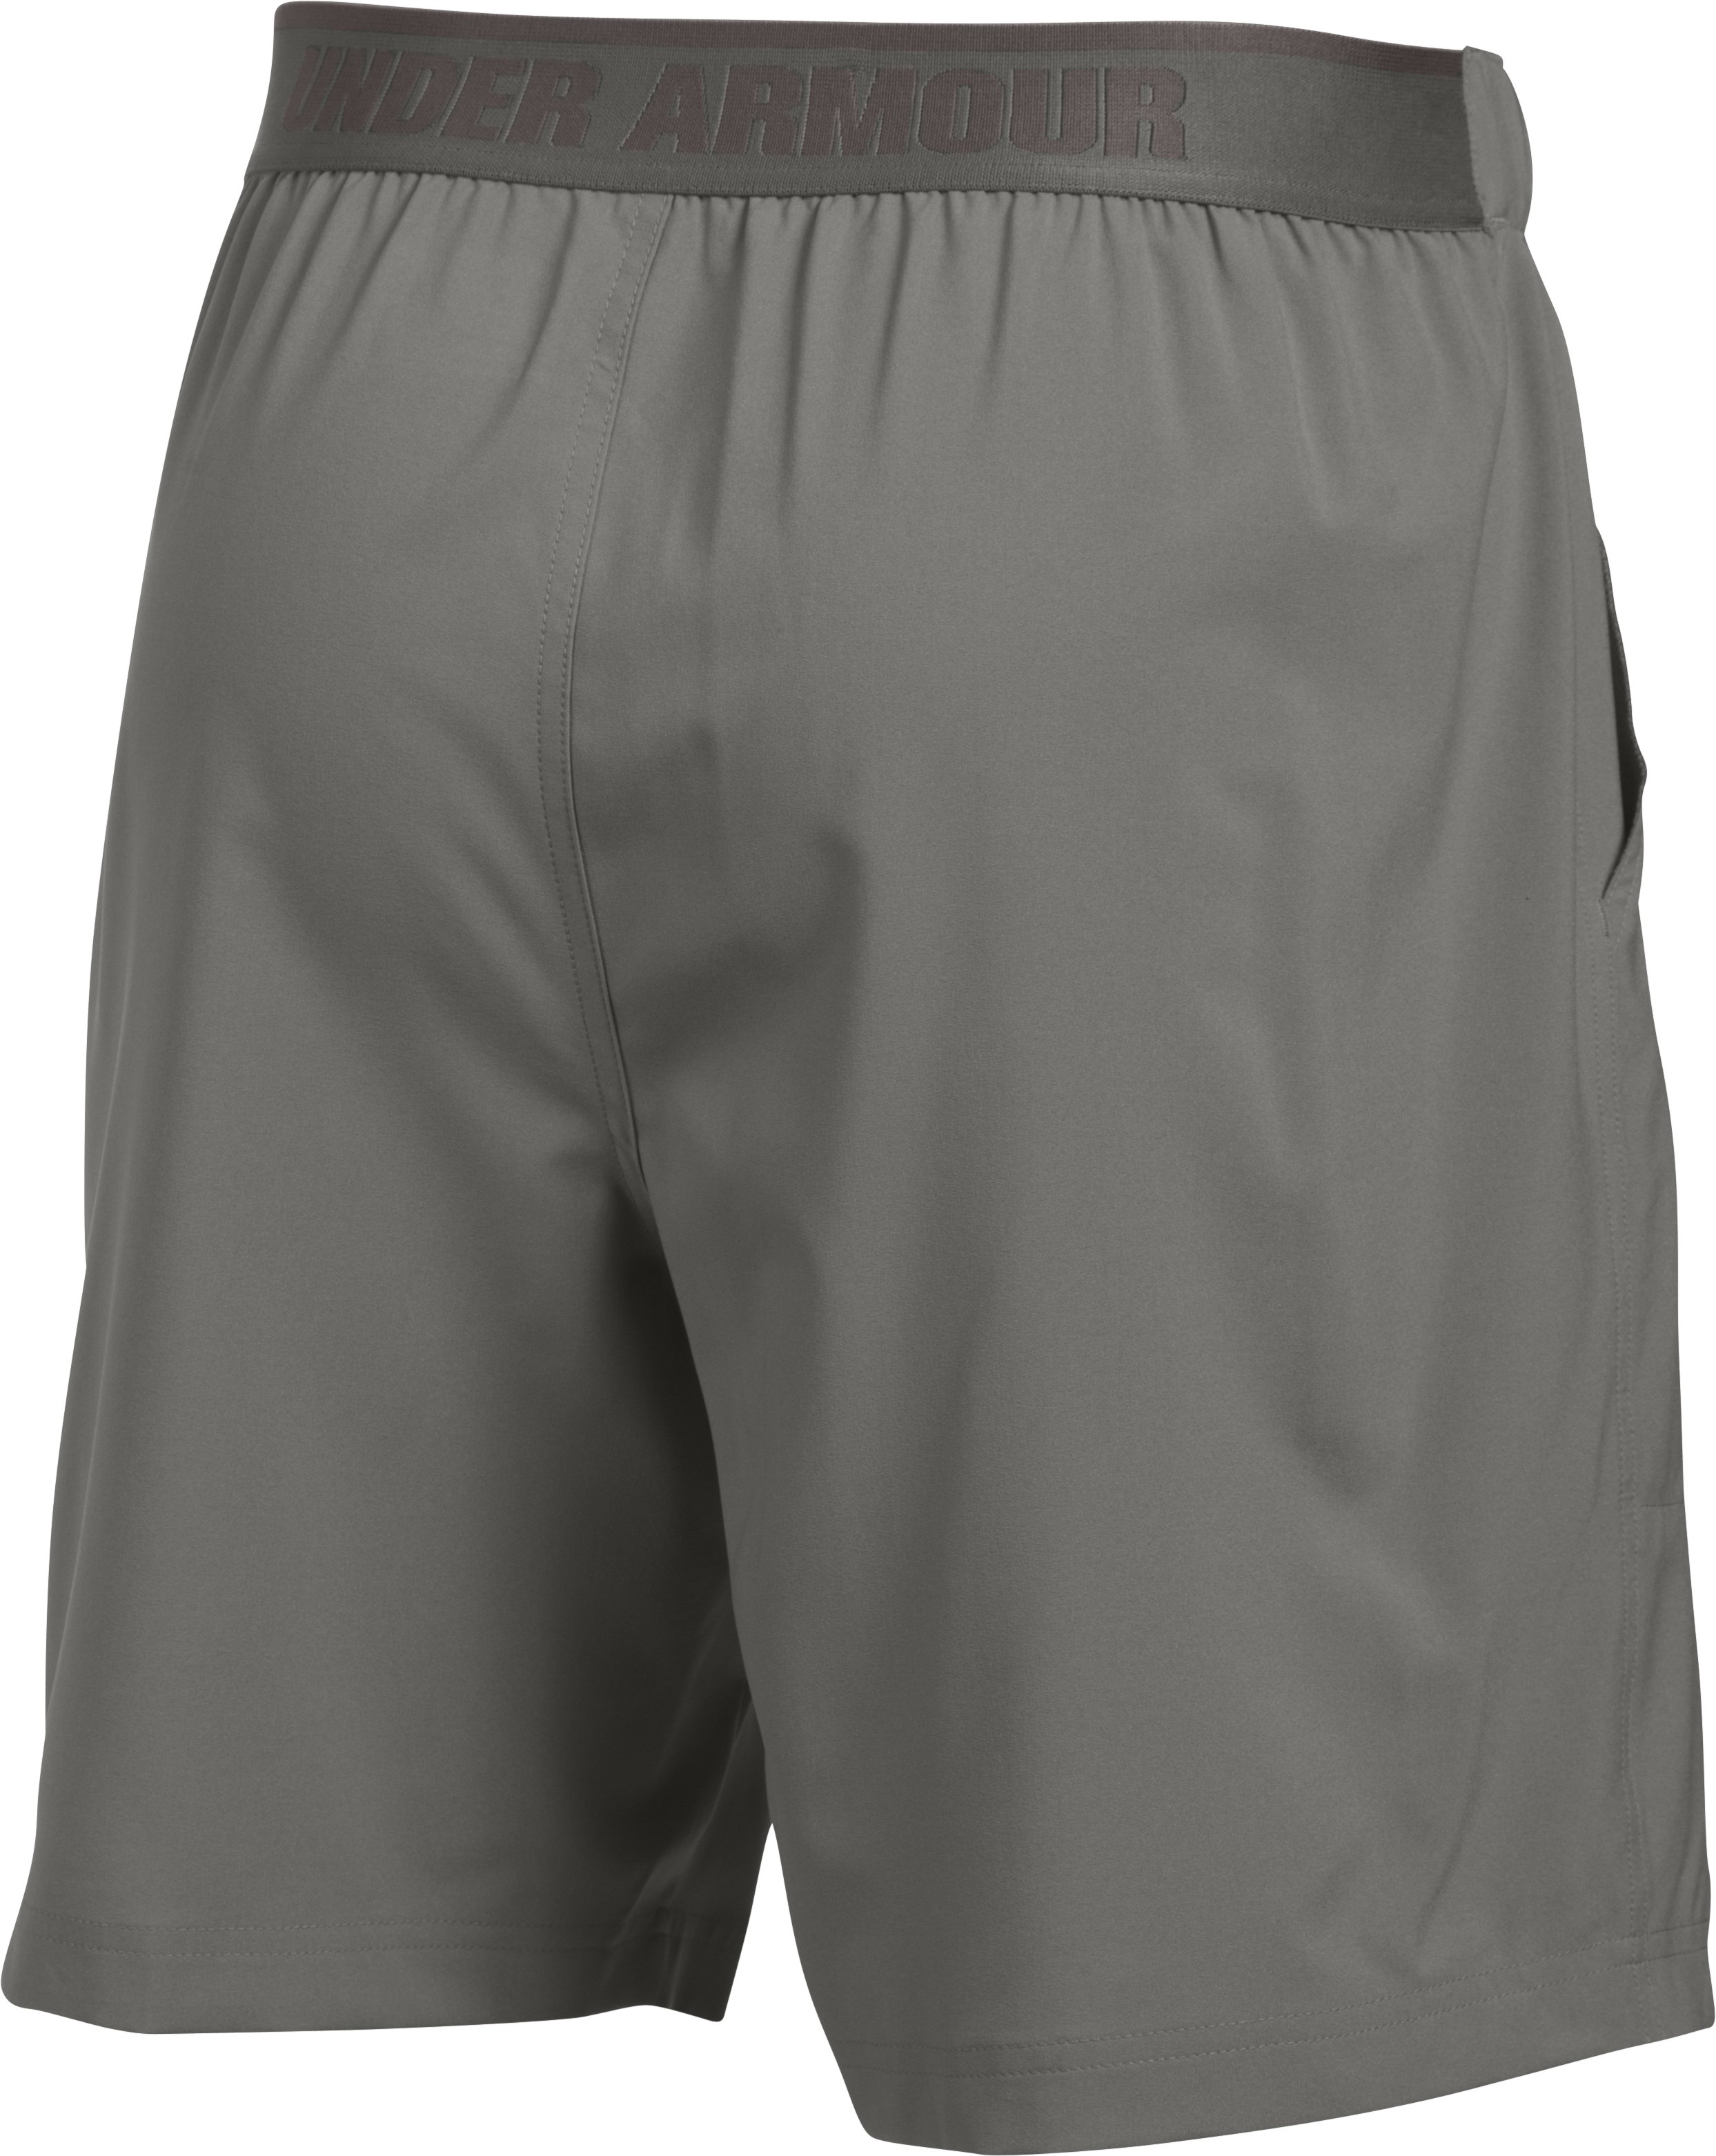 Men's UA Coastal Amphibious Board Shorts, TAN STONE, undefined